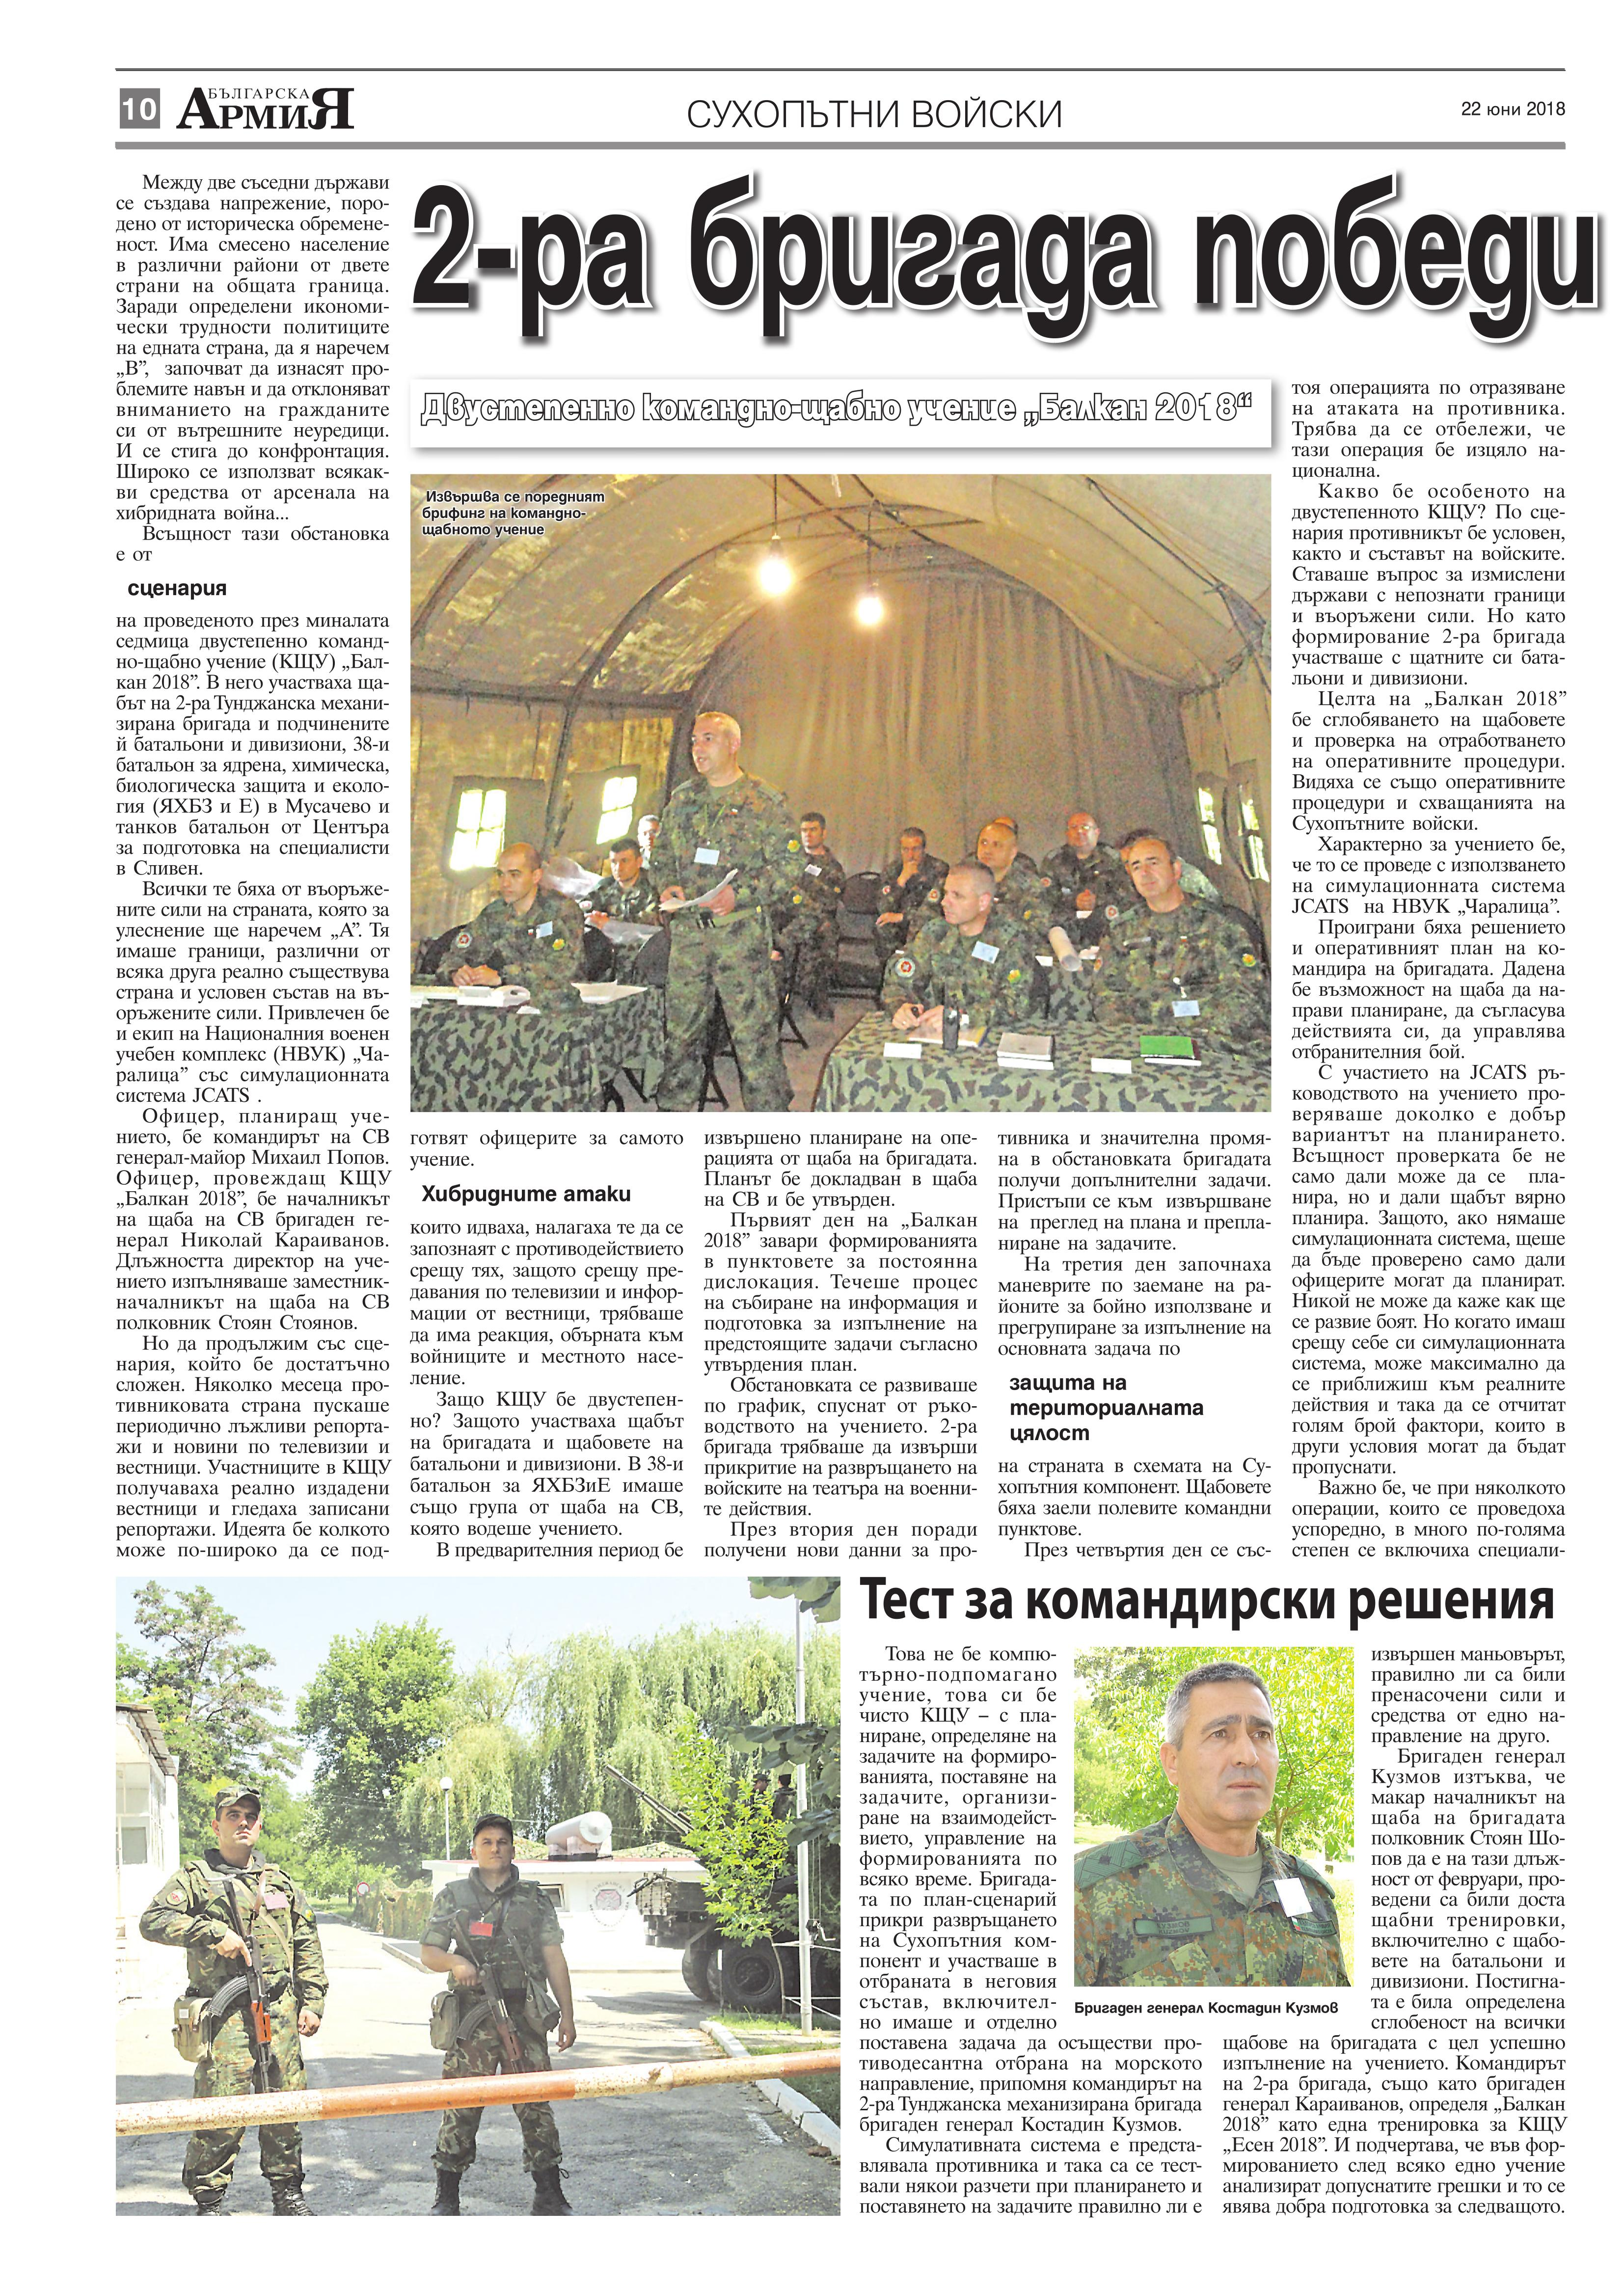 http://armymedia.bg/wp-content/uploads/2015/06/10.page1_-56.jpg